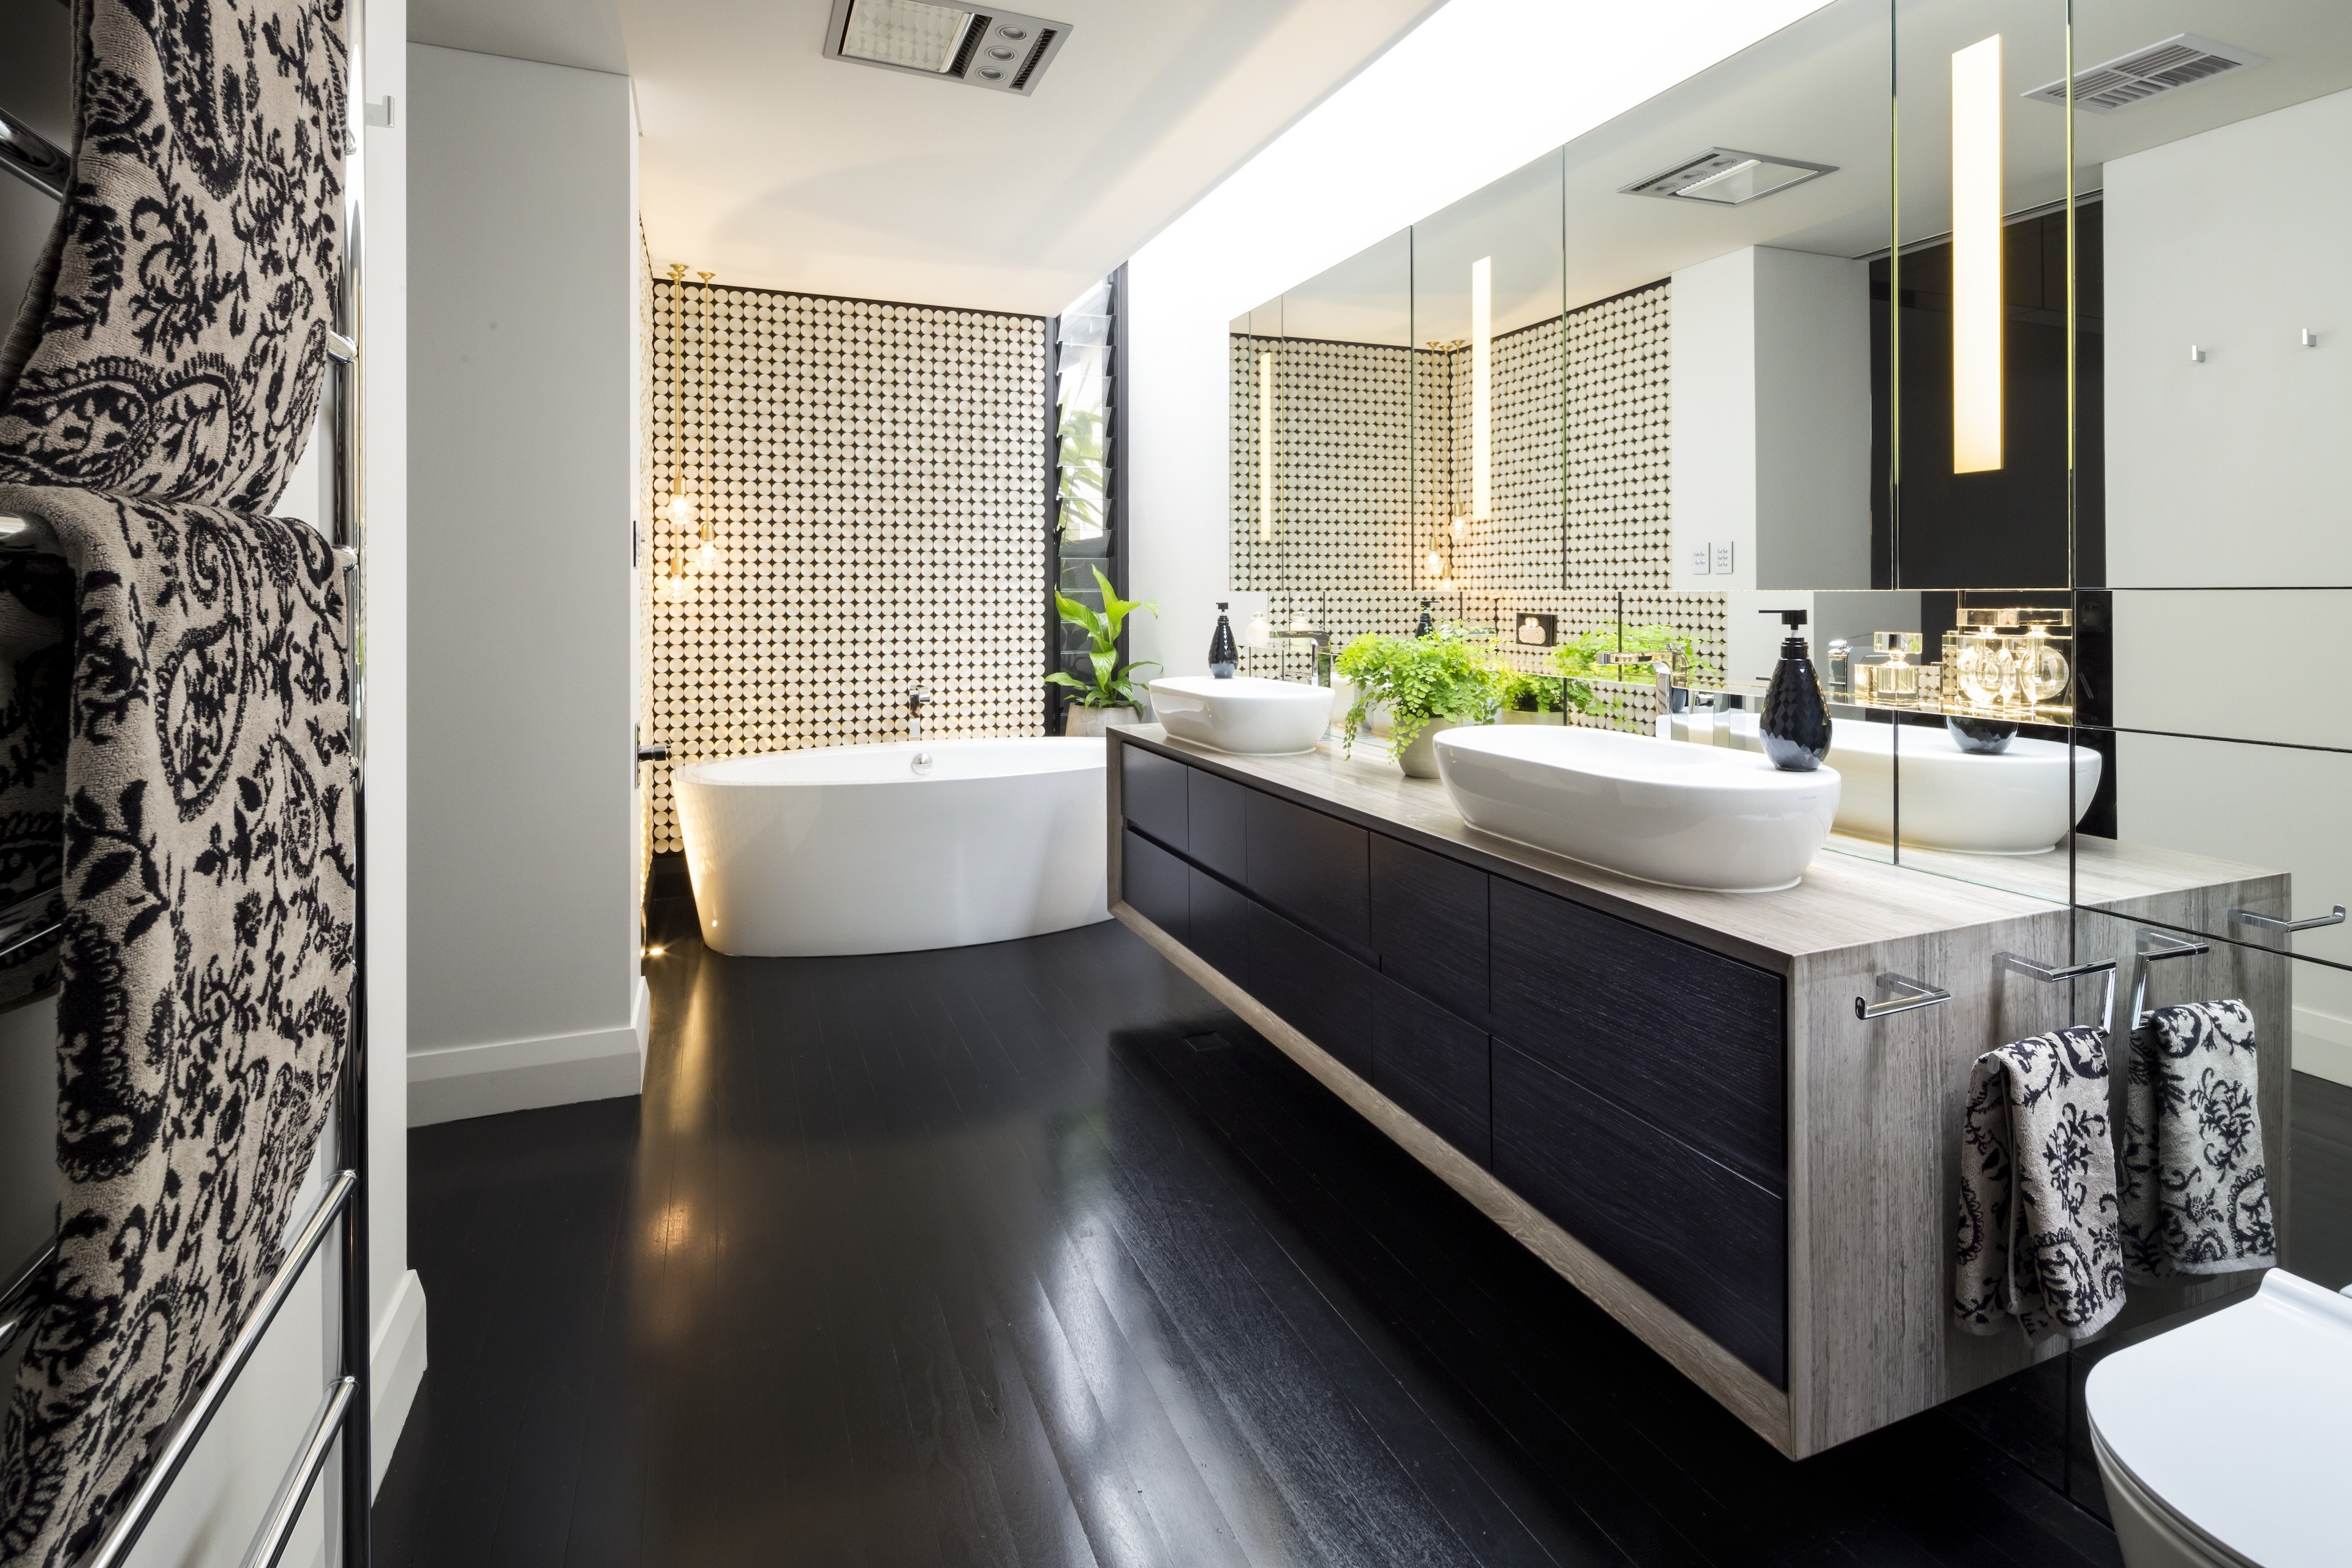 Trends home kitchen bathroom and renovation for Australian small bathroom design